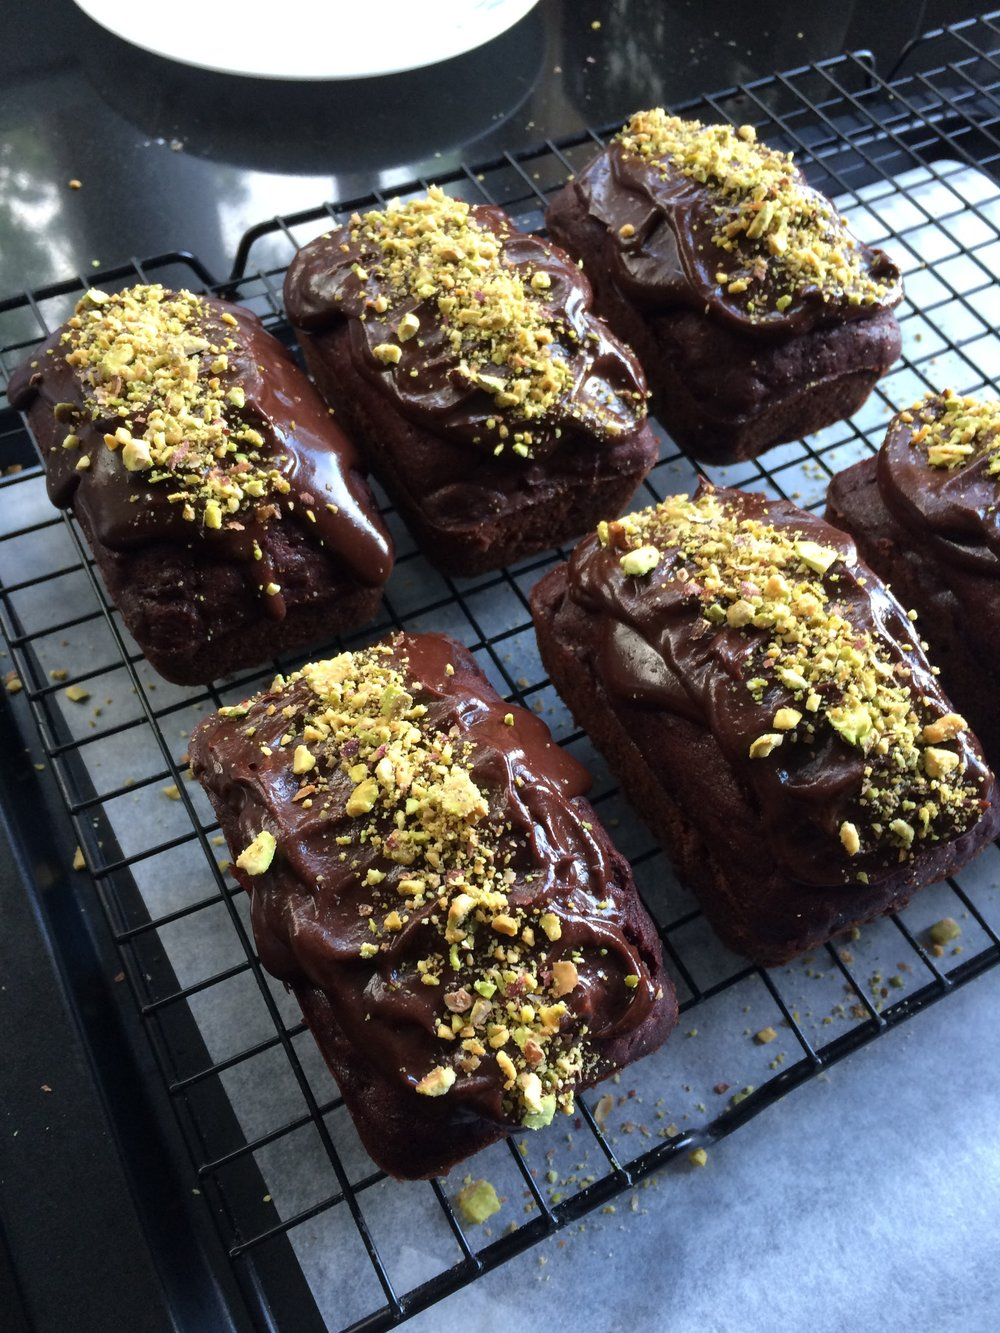 Chocolate Loaves - 8 loaves - $30Smothered with chocolate ganche and decorated with pistachios